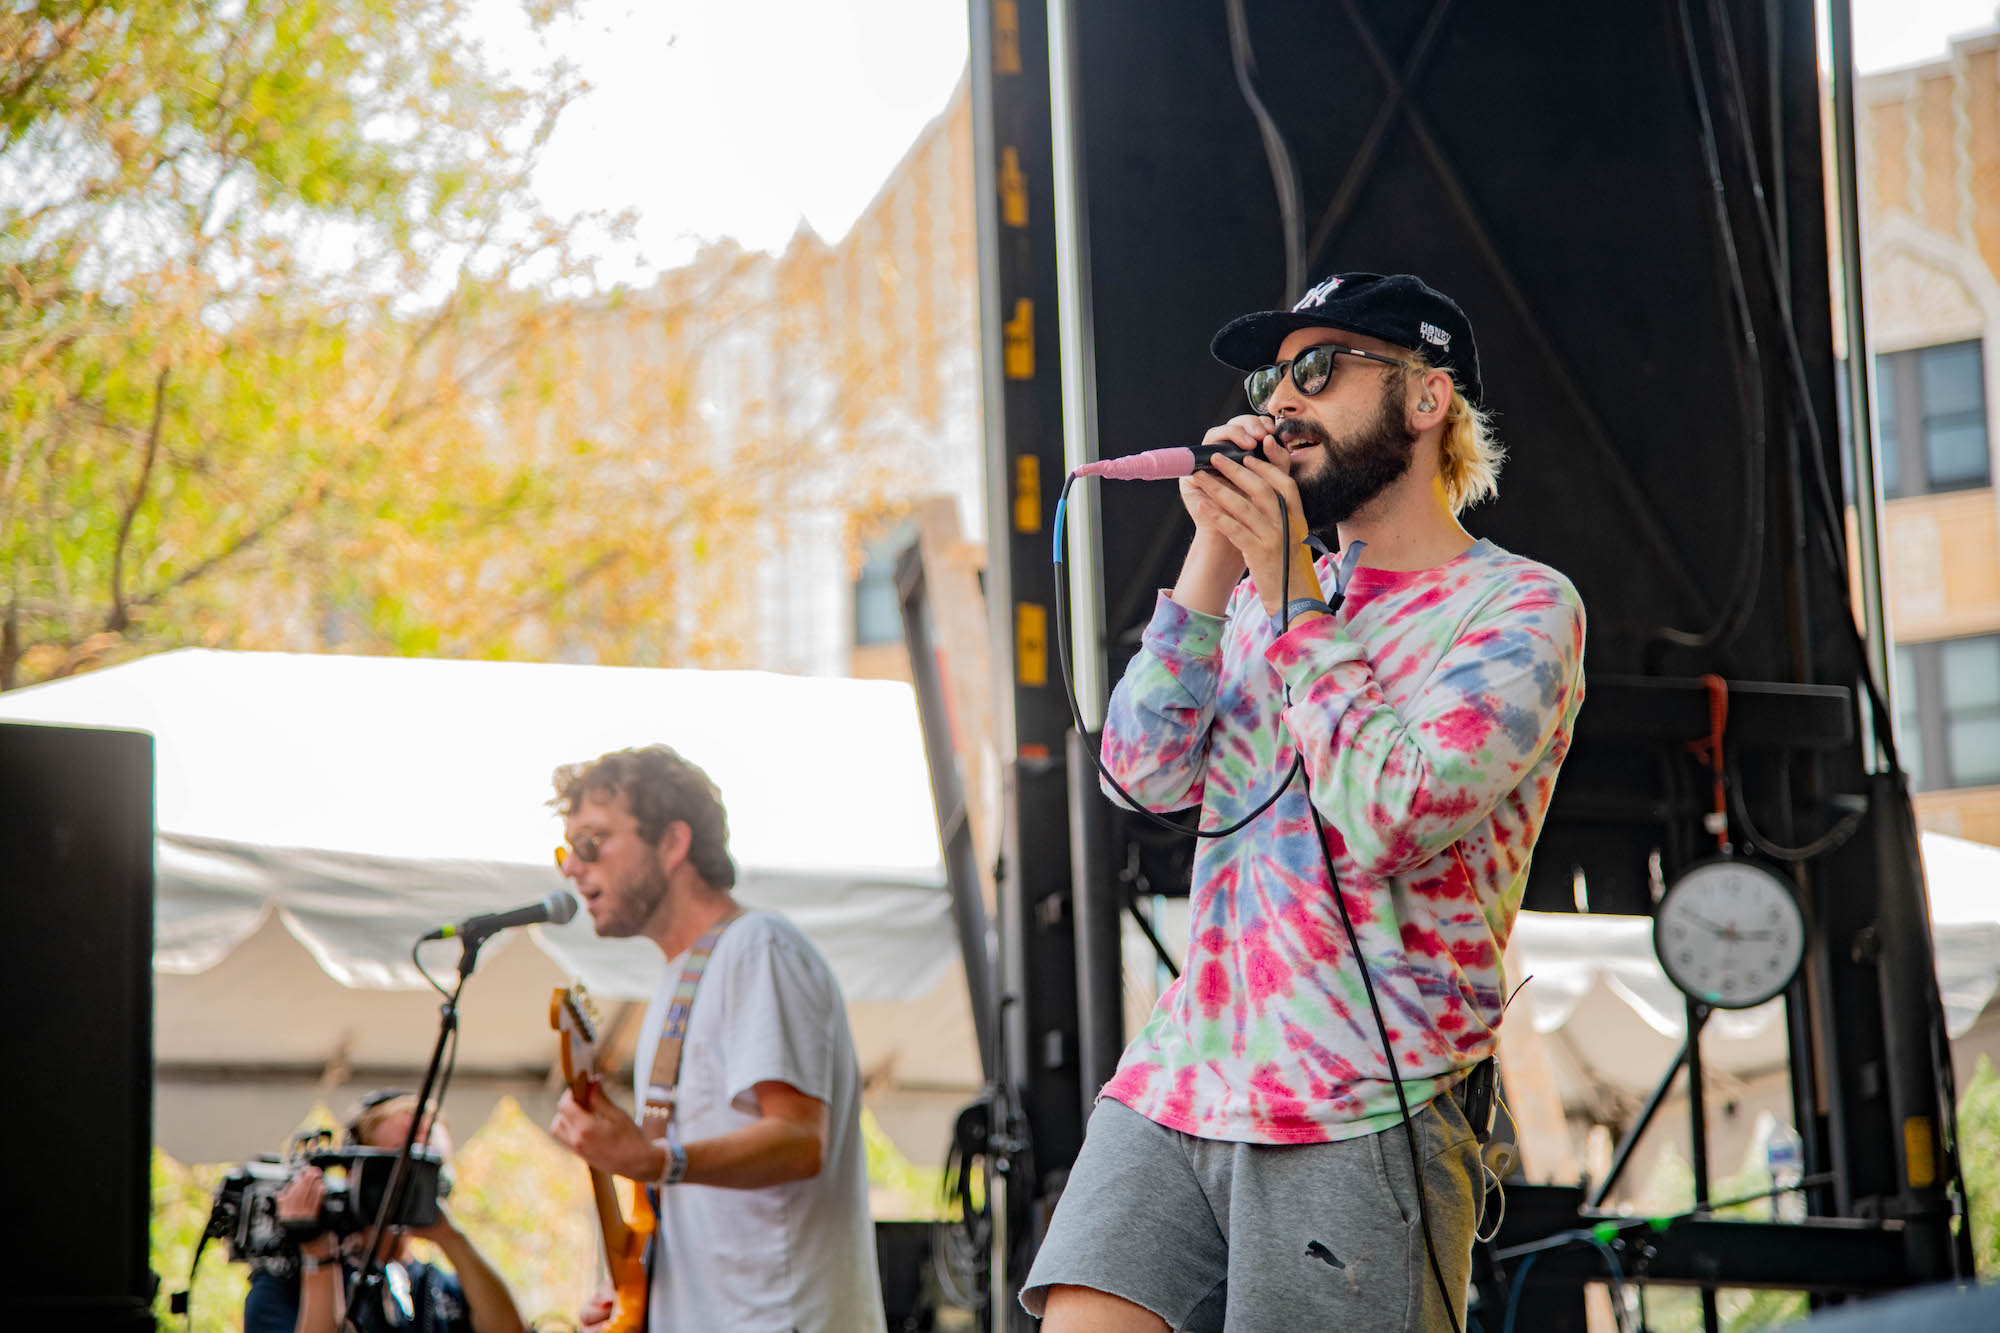 Oso Oso Live at Pitchfork [GALLERY] 3